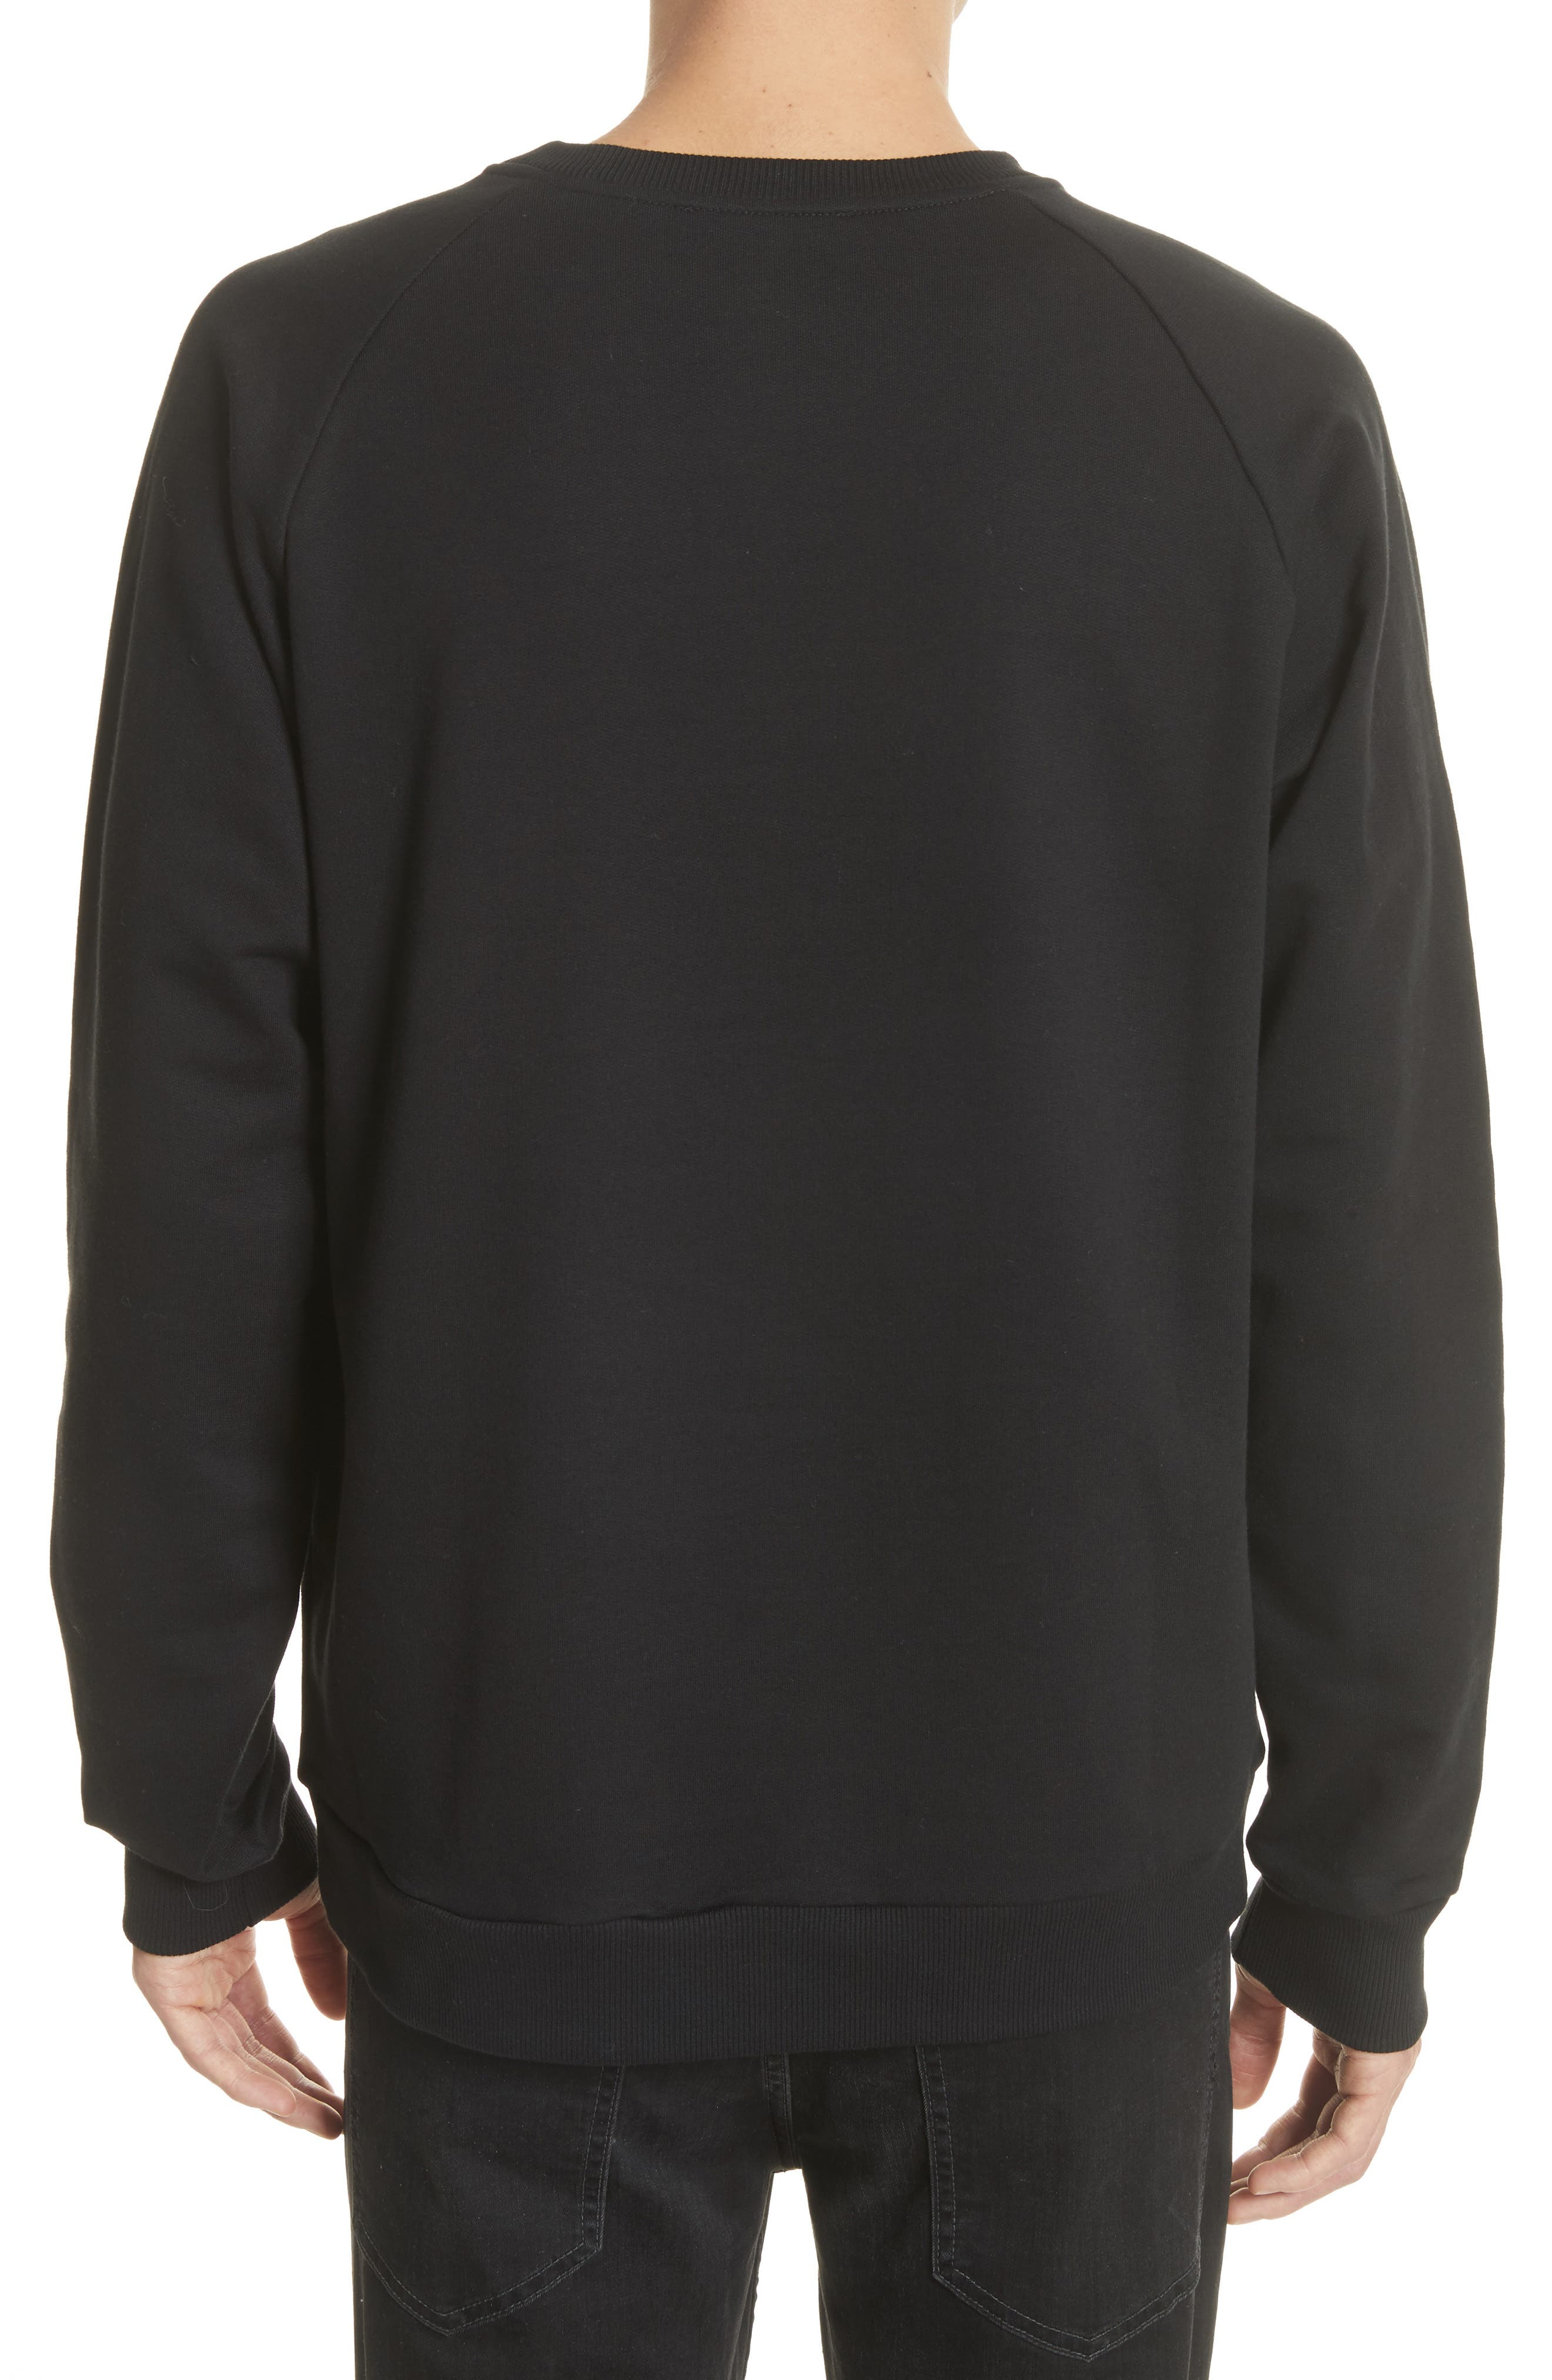 Embroidered Tiger Sweatshirt,                             Alternate thumbnail 2, color,                             001